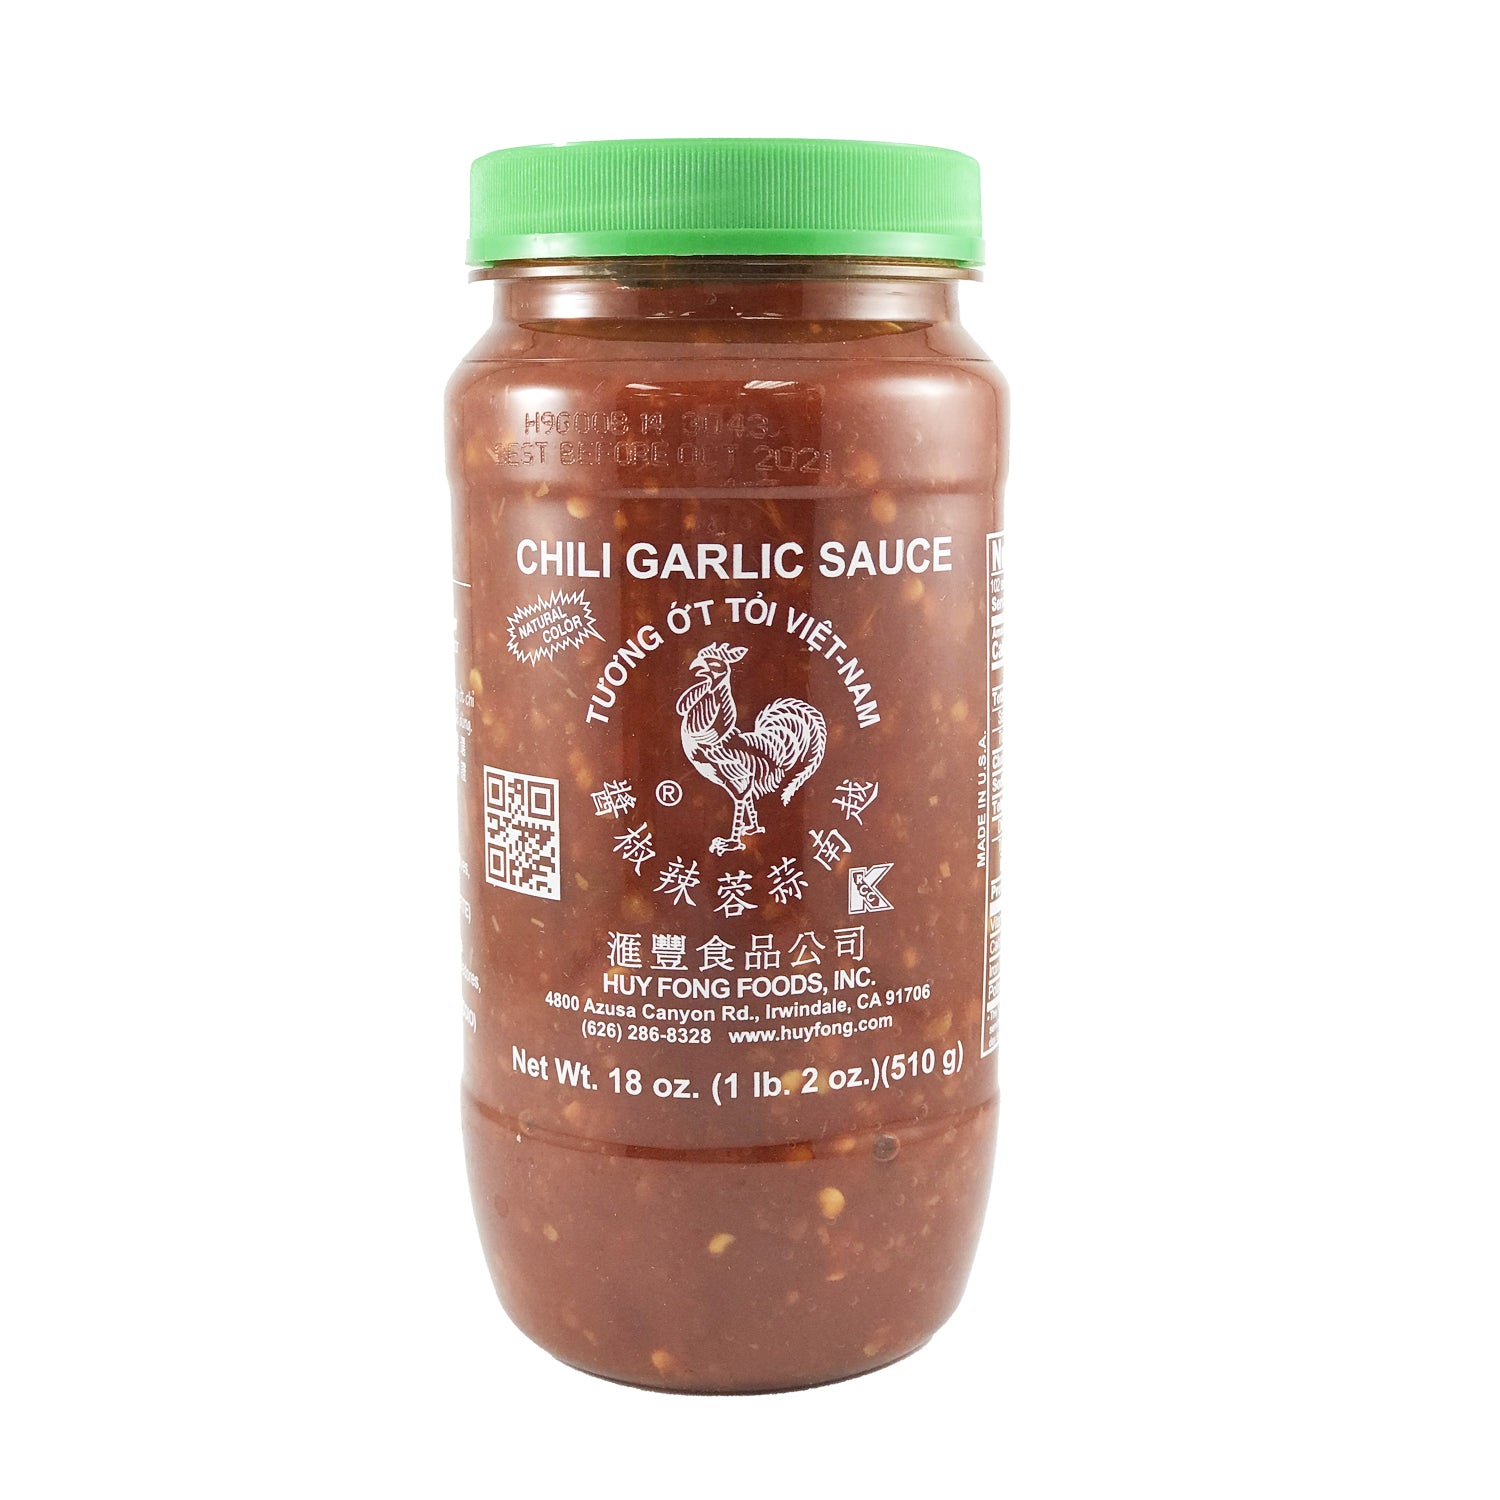 Chili Garlic Sauce 越南蒜蓉辣椒酱 18oz